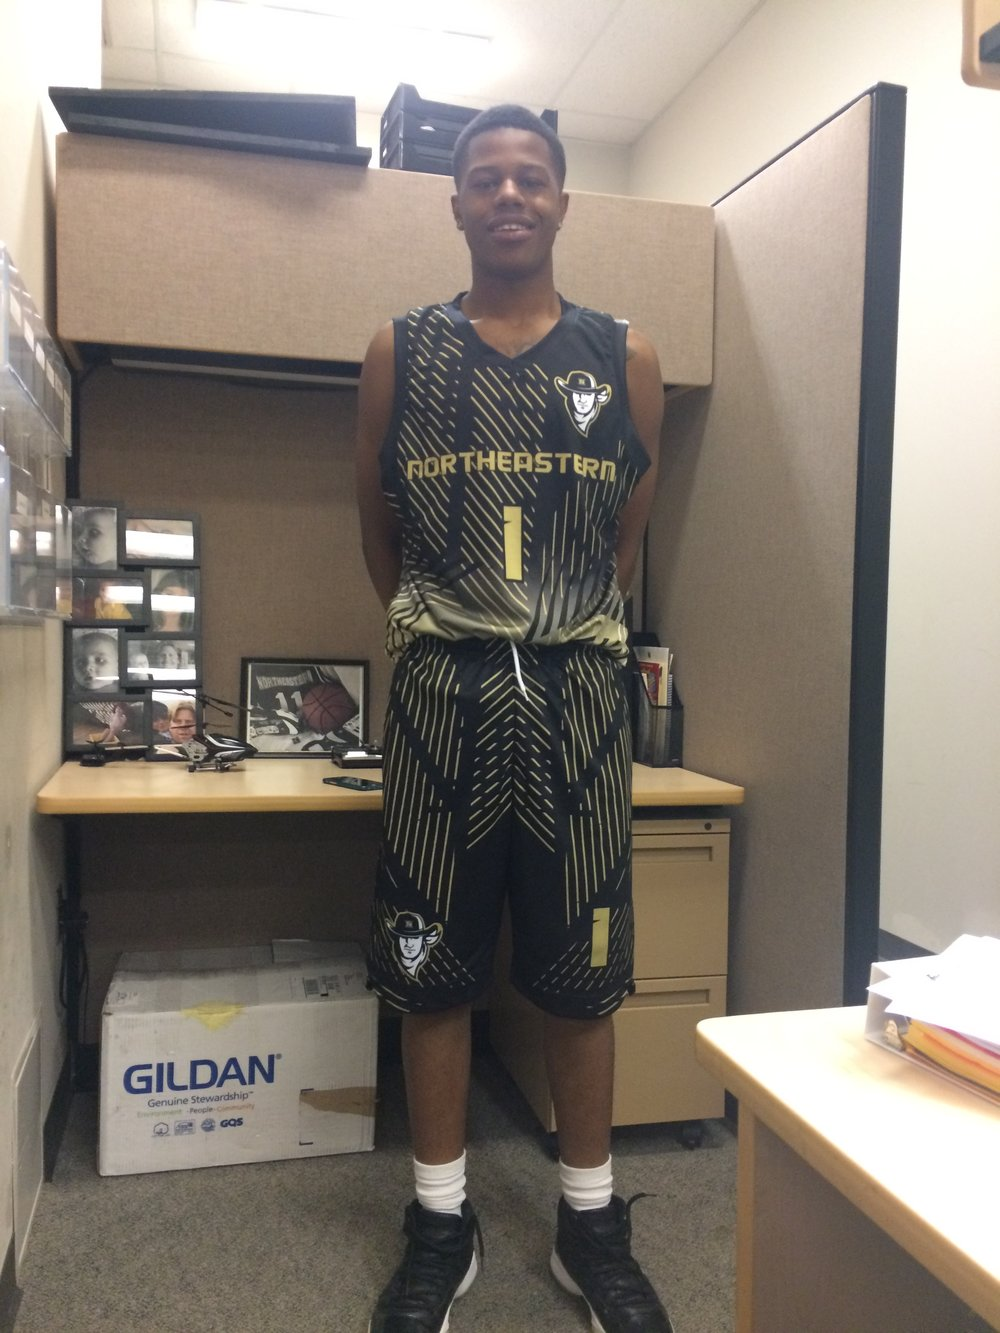 Vegas Gold Black and White Basketball Uniforms, Jersey and Shorts